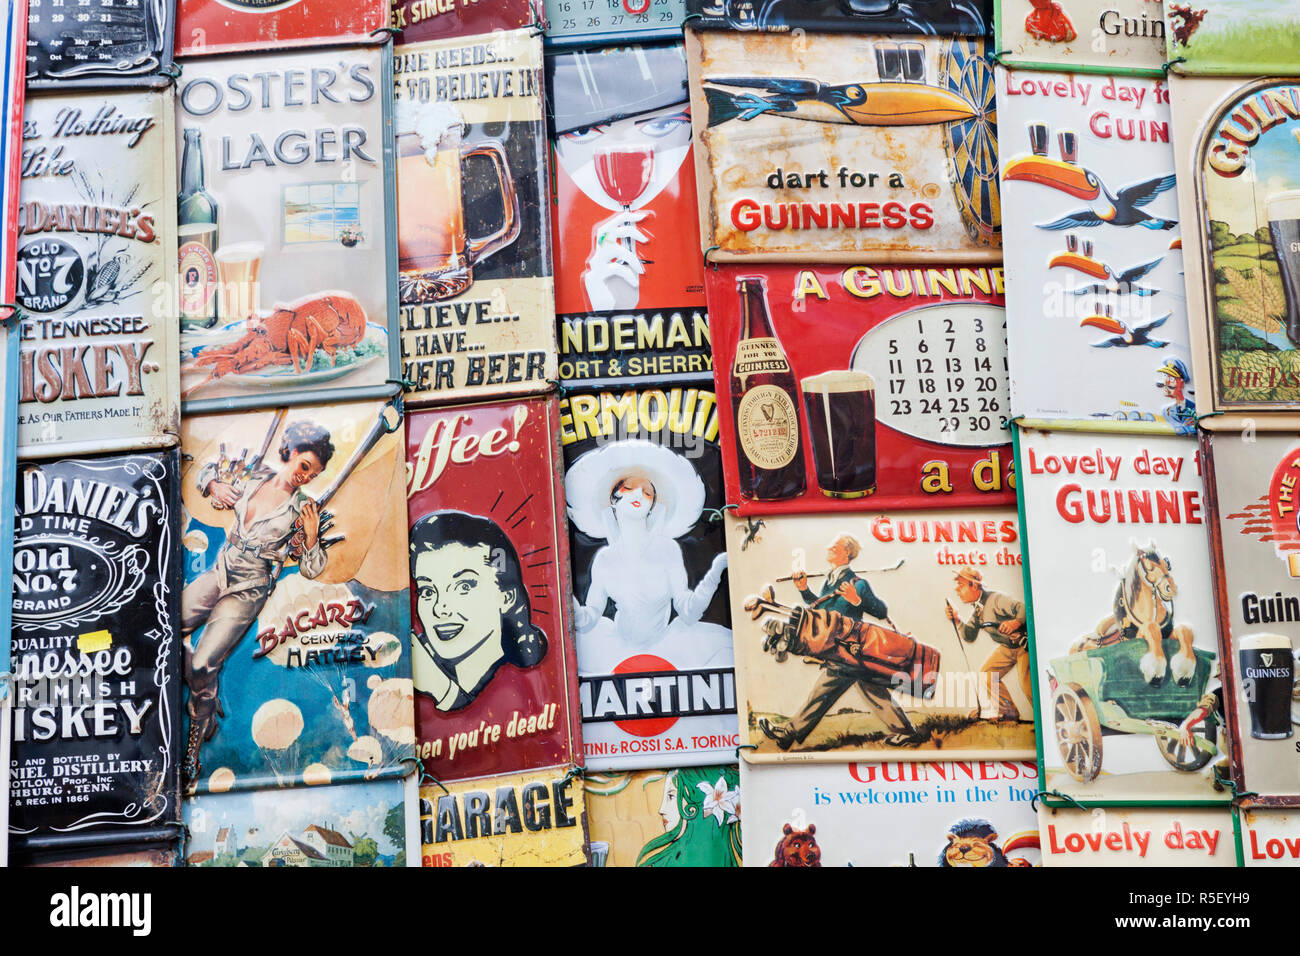 Reproduction Vintage Advertising Signs Stock Photos